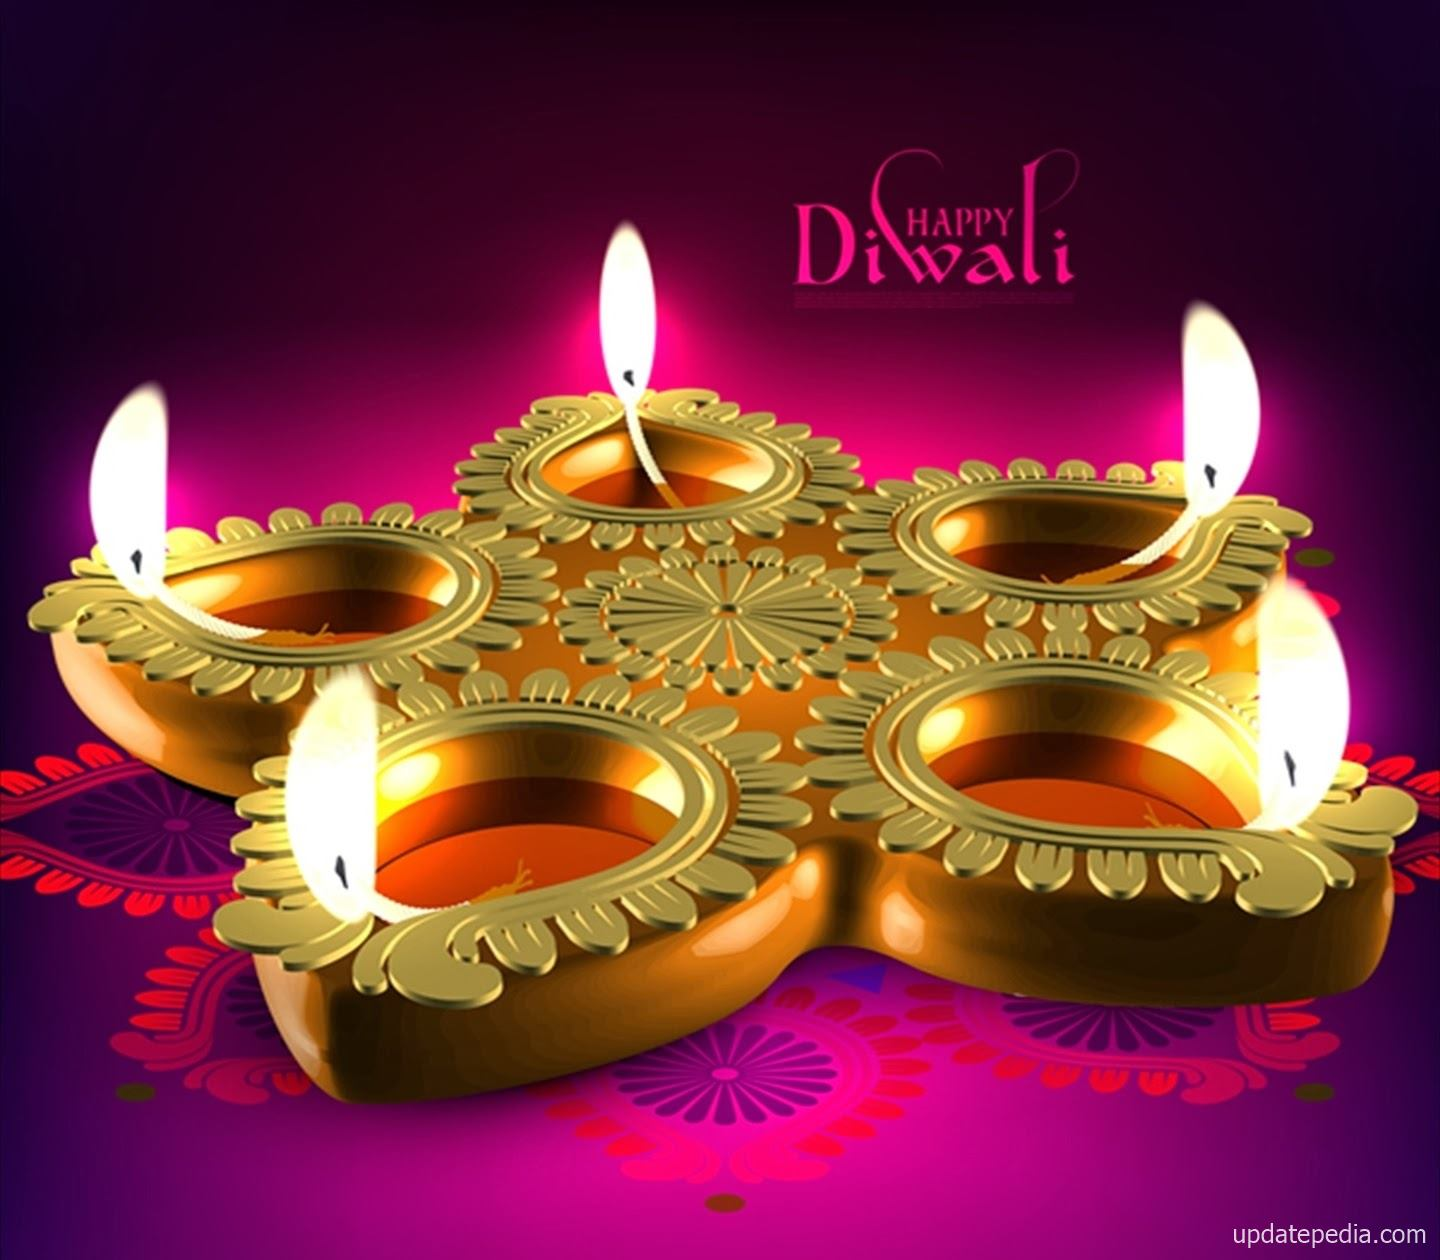 101 Happy Diwali Greeting Images Wishes Pictures Wallpaper